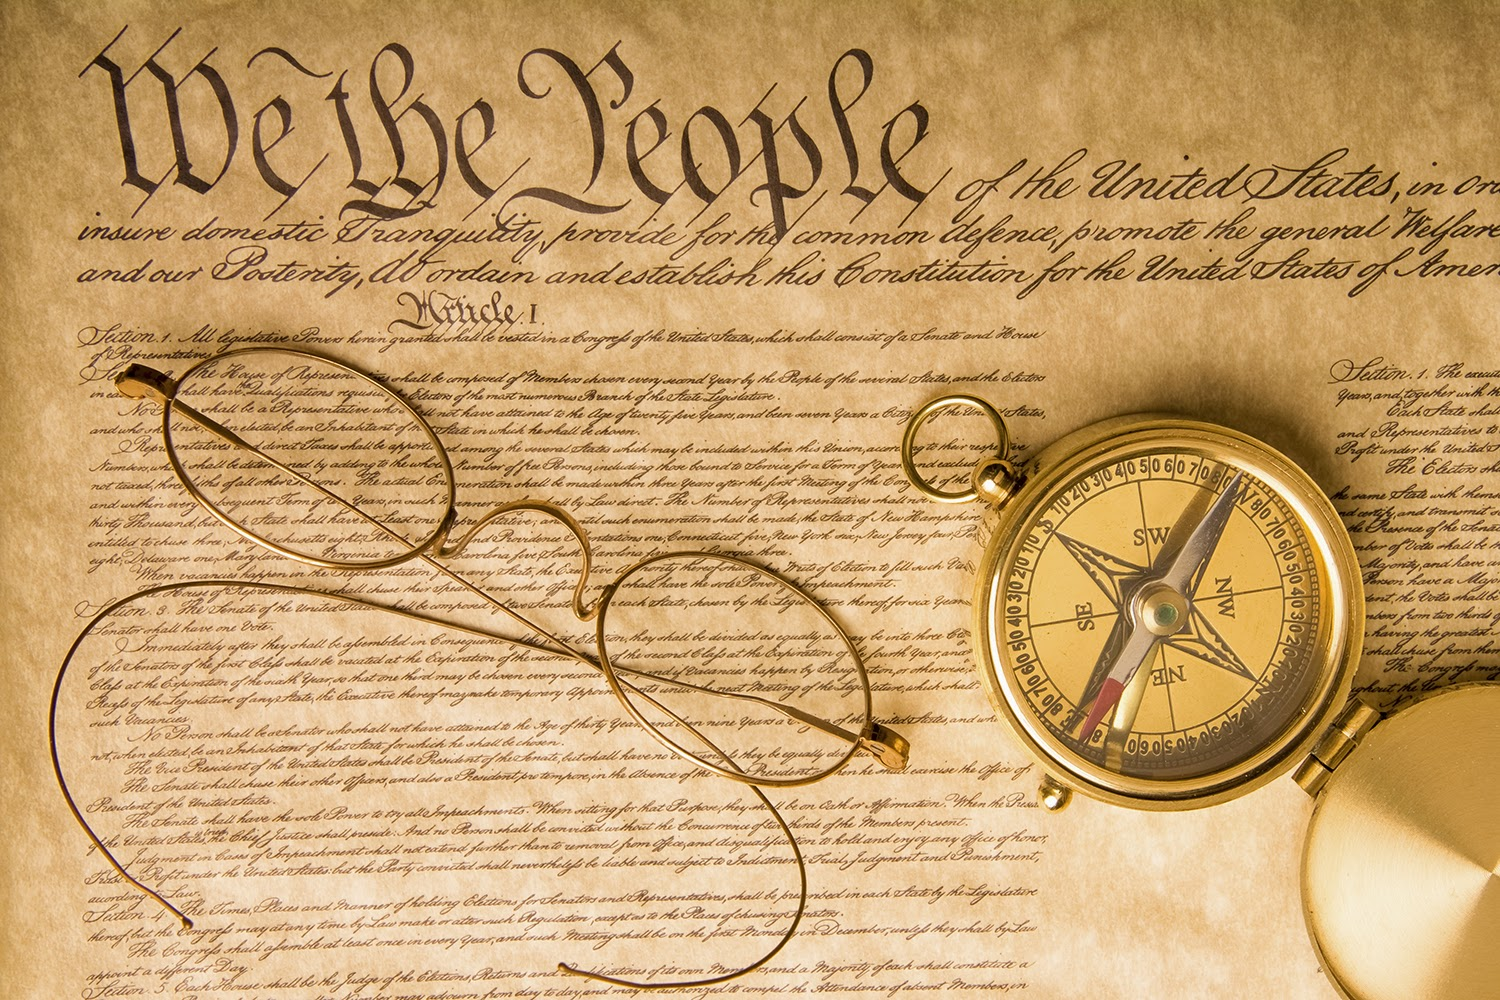 image of the U.S. Constitution